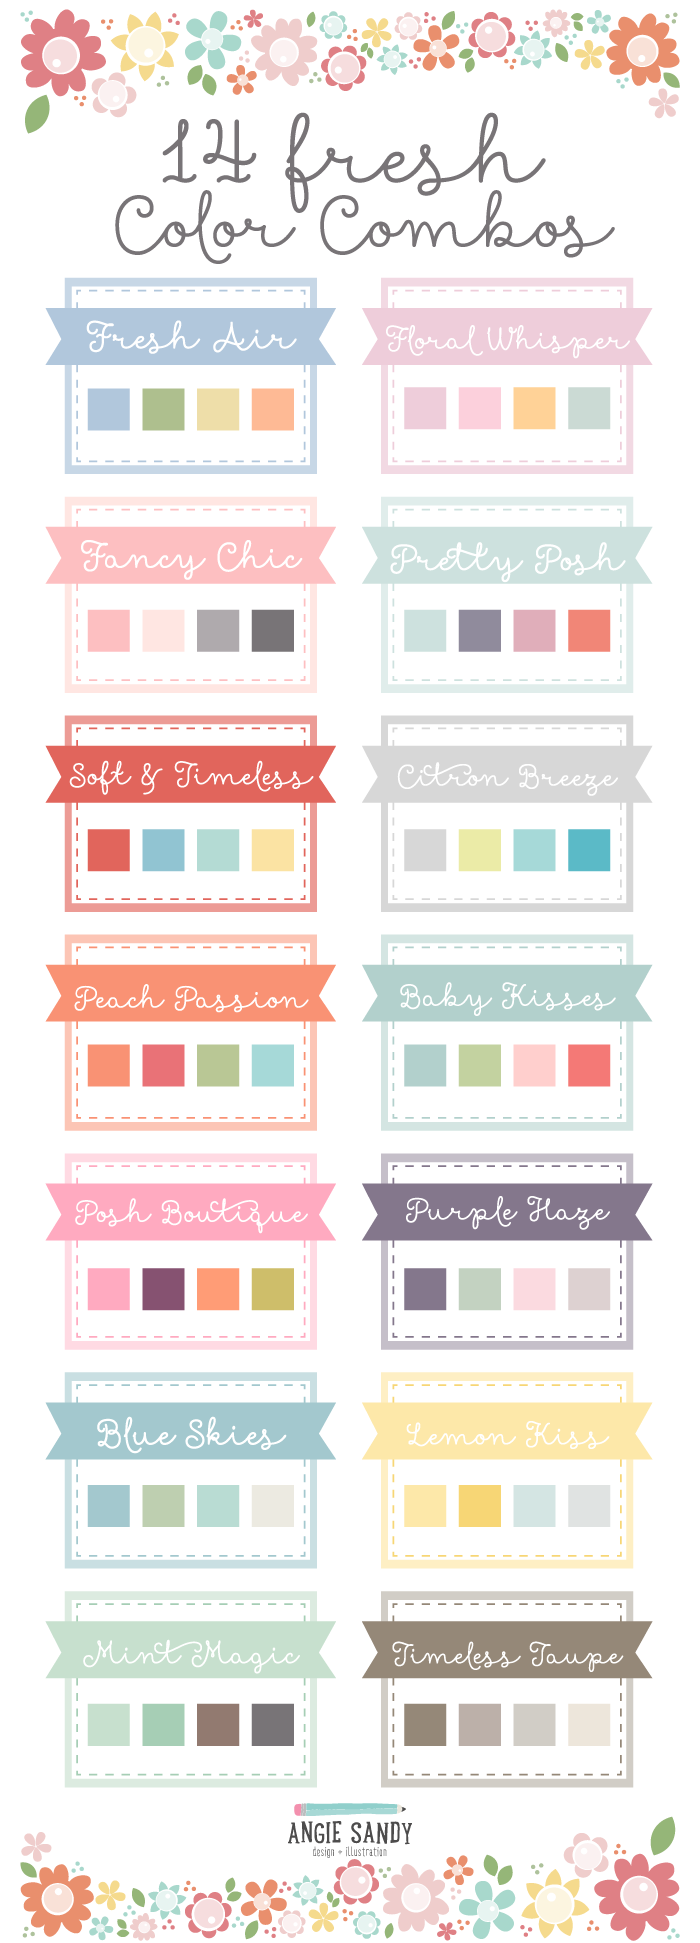 14 Fresh Color Palettes | Angie Sandy Art Licensing & Design #angiesandy #colorpalette #colorcrush